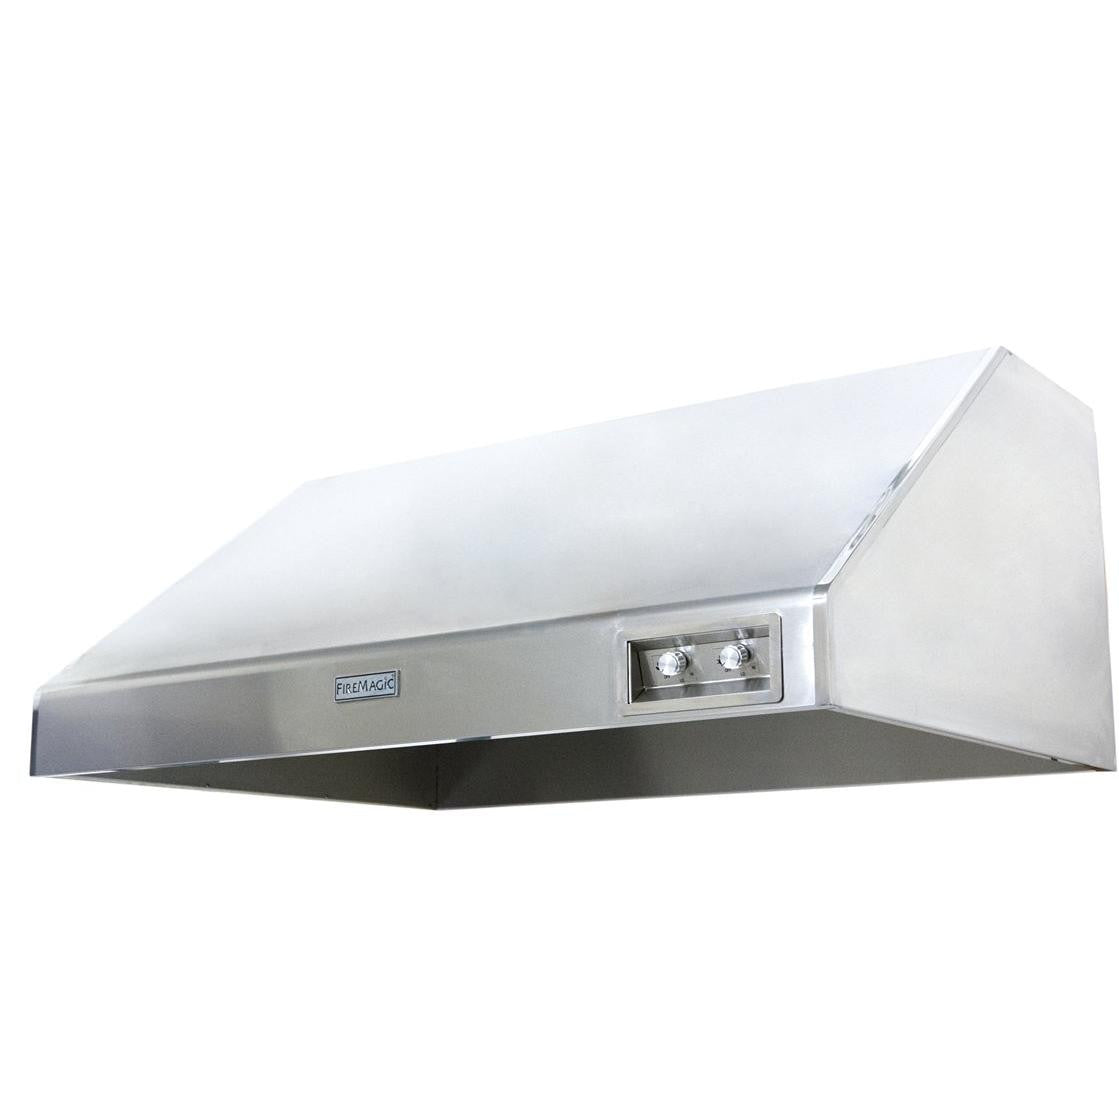 Fire Magic 42-Inch Stainless Steel Outdoor Vent Hood - 1200 CFM 42-VH-6